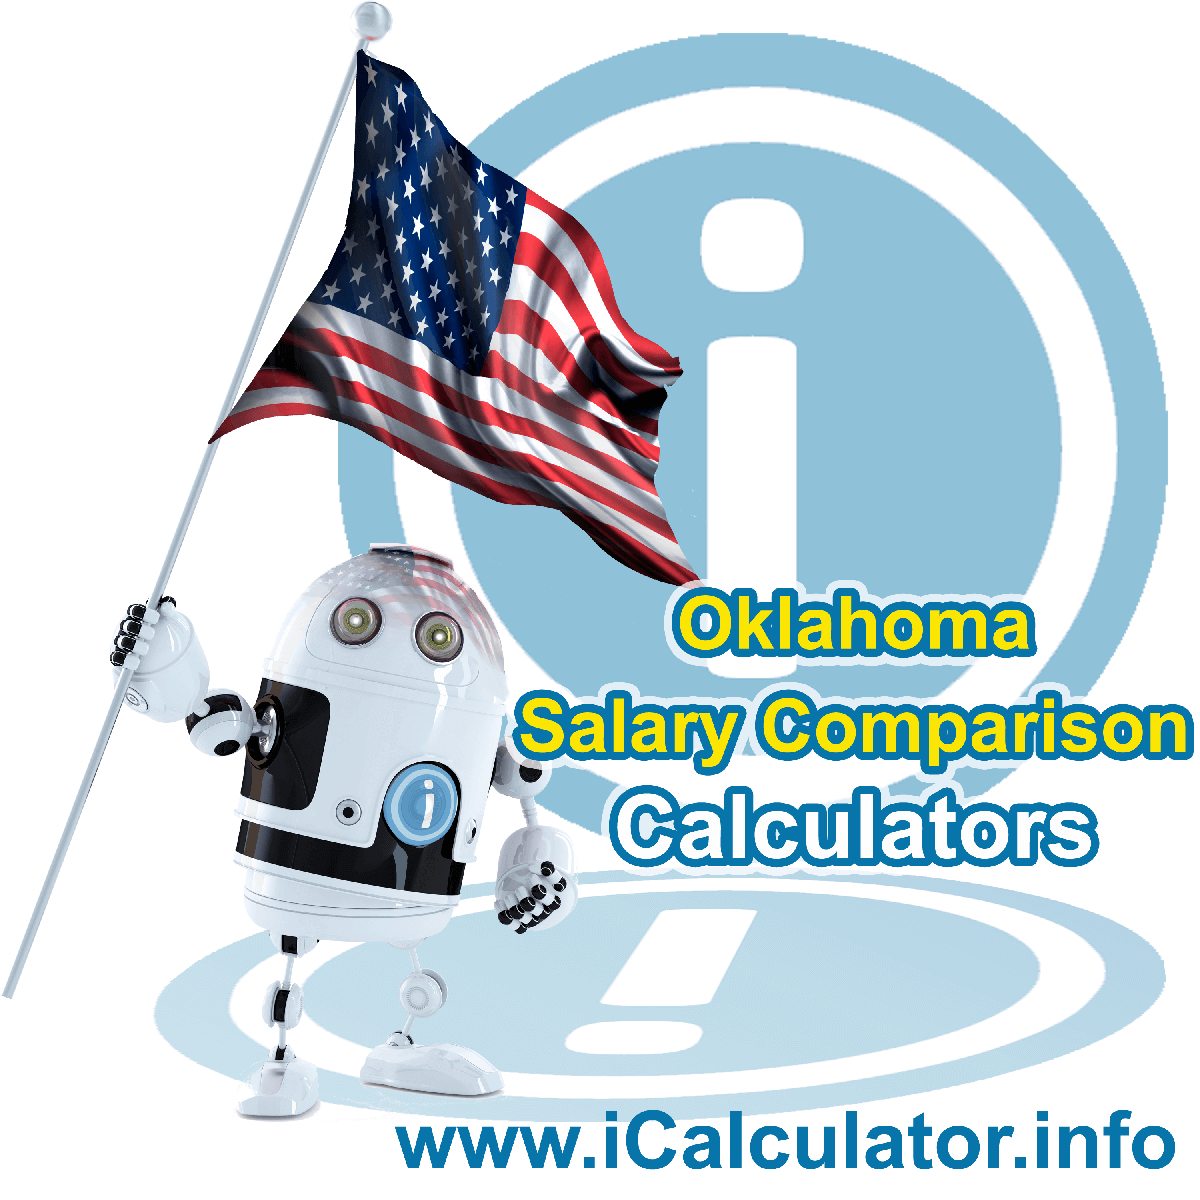 Oklahoma Salary Comparison Calculator 2021 | iCalculator™ | The Oklahoma Salary Comparison Calculator allows you to quickly calculate and compare upto 6 salaries in Oklahoma or between other states for the 2021 tax year and historical tax years. Its an excellent tool for jobseekers, pay raise comparison and comparison of salaries between different US States